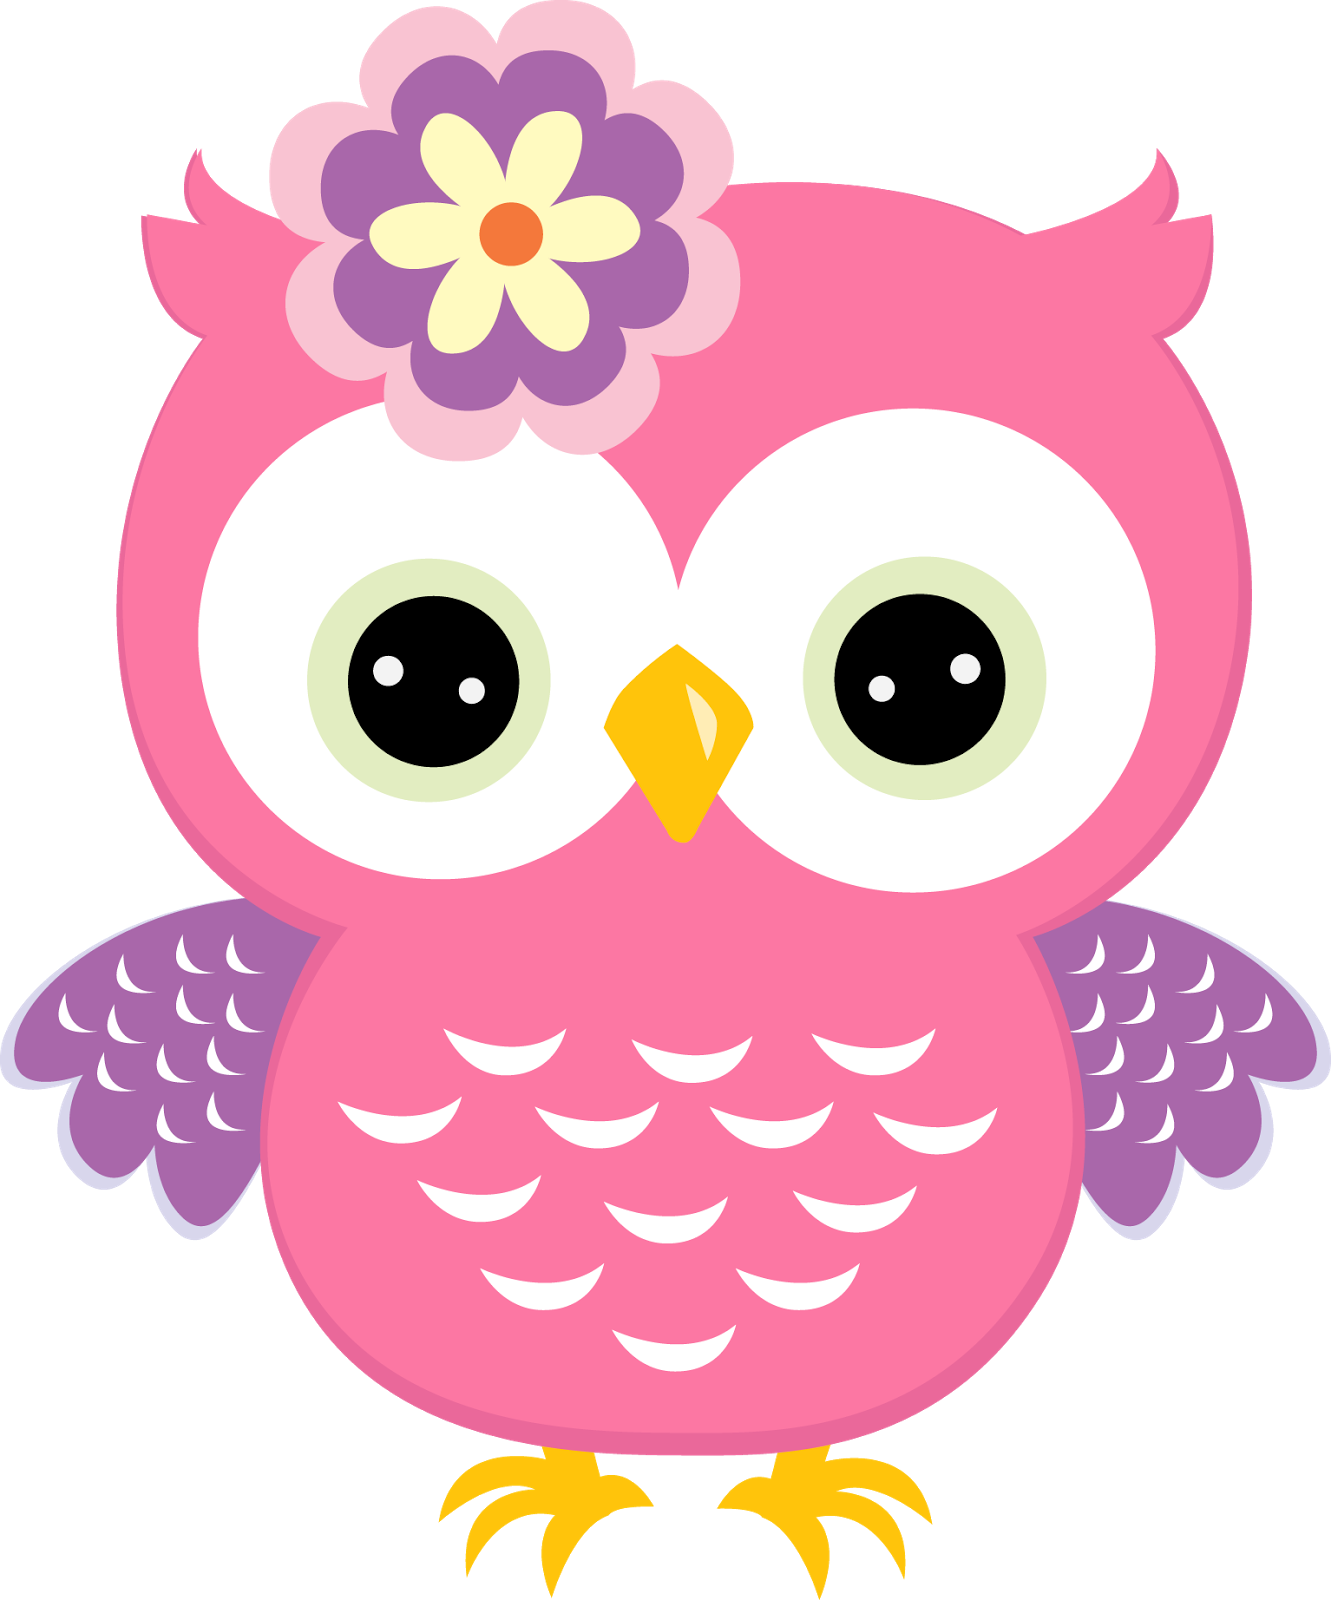 De b hos colores. Showering clipart mom baby owl